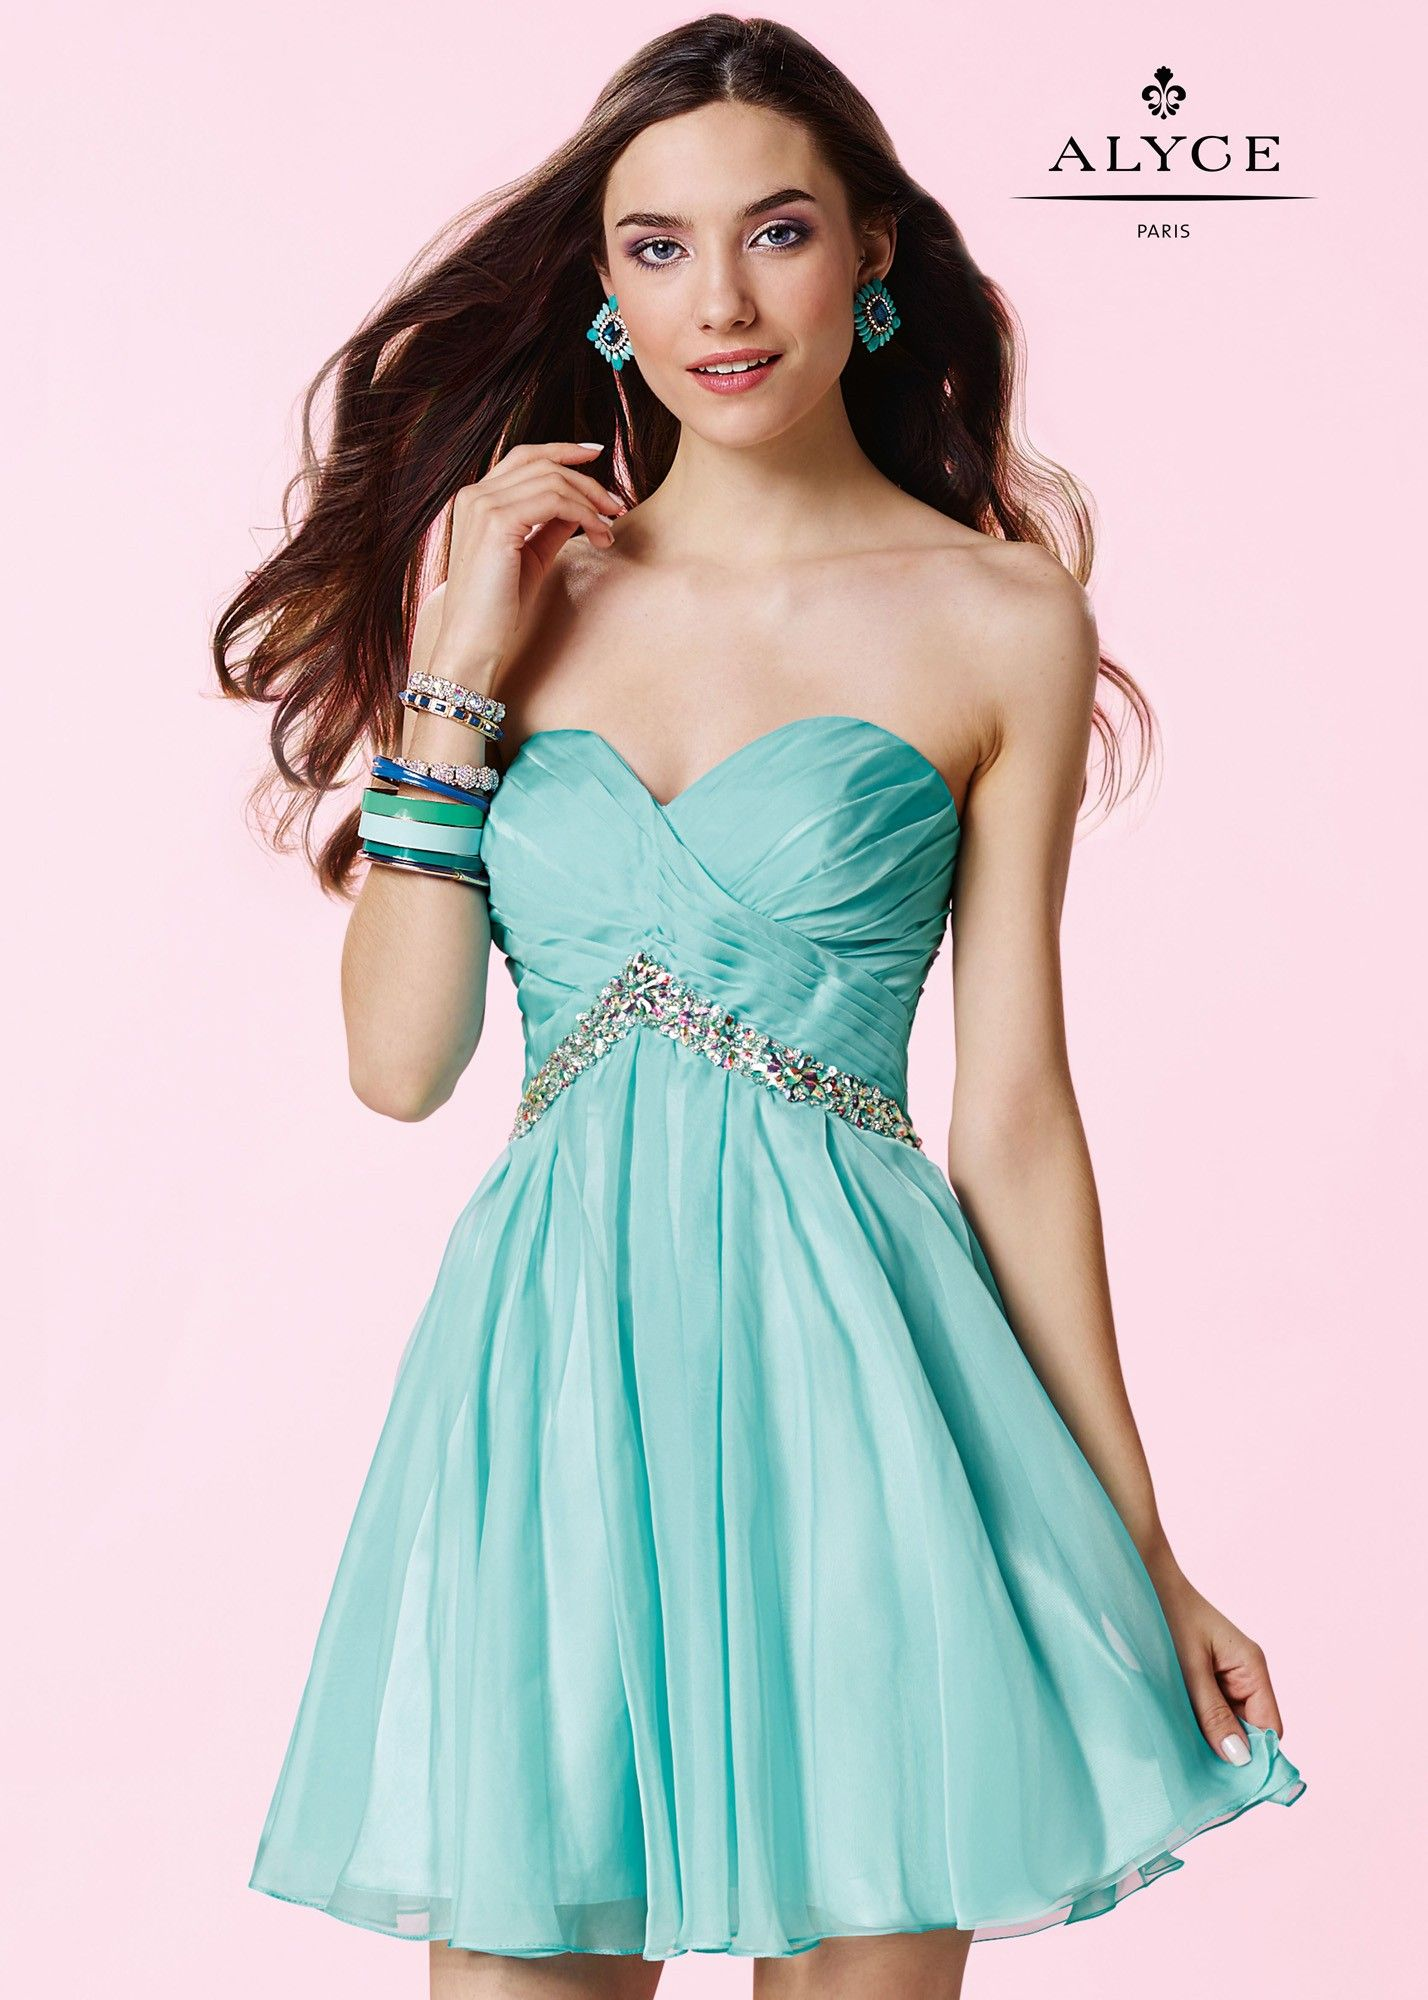 Alyce 3670 Strapless Ruched Chiffon Party Dress $178 - Quinceanera ...